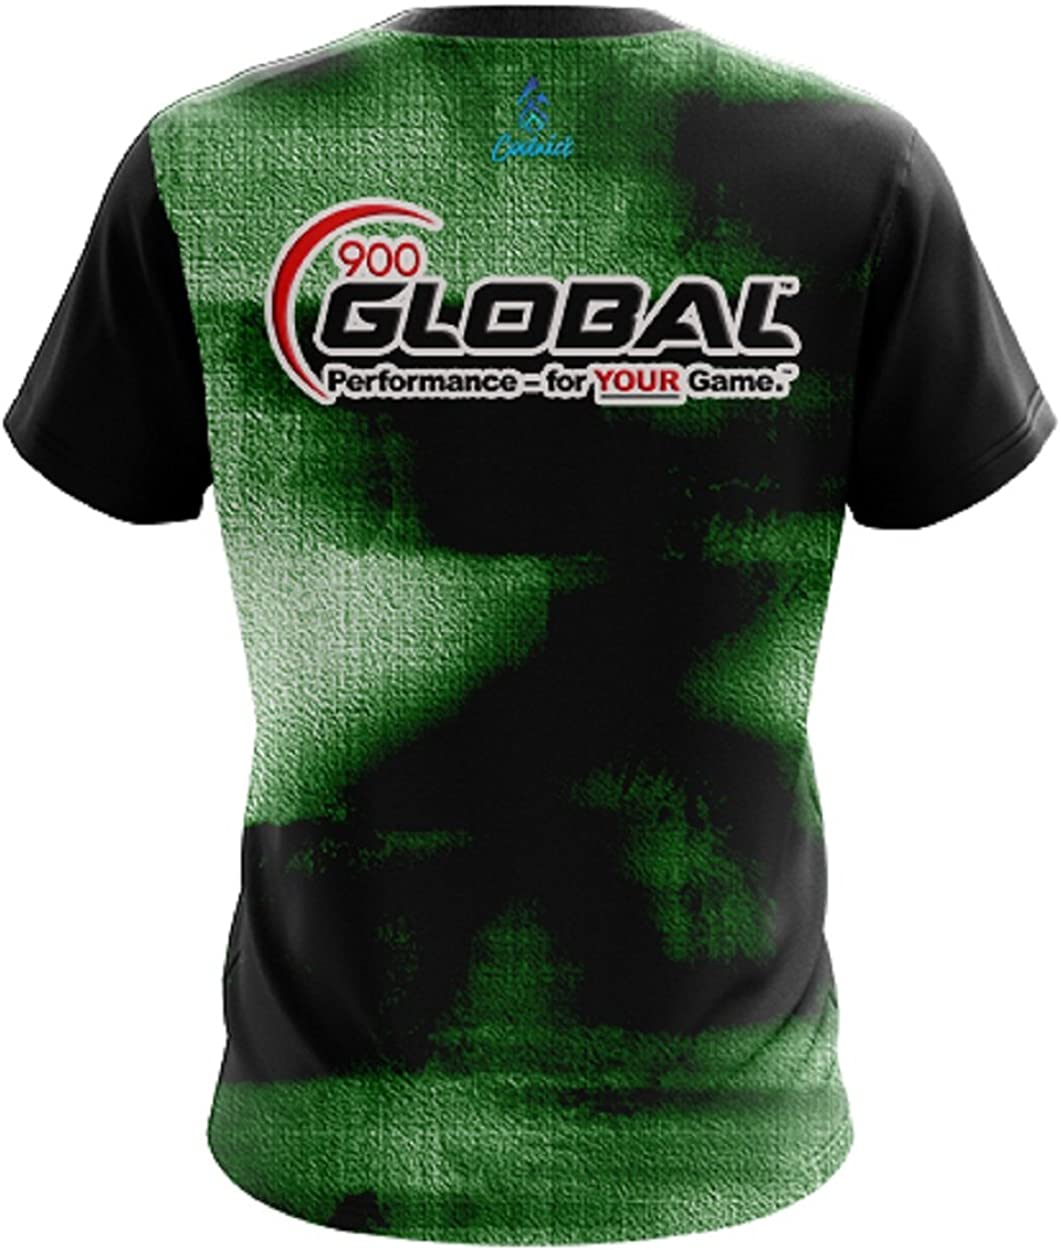 CoolWick 900 Global Mens Canvas Green Bowling Jersey